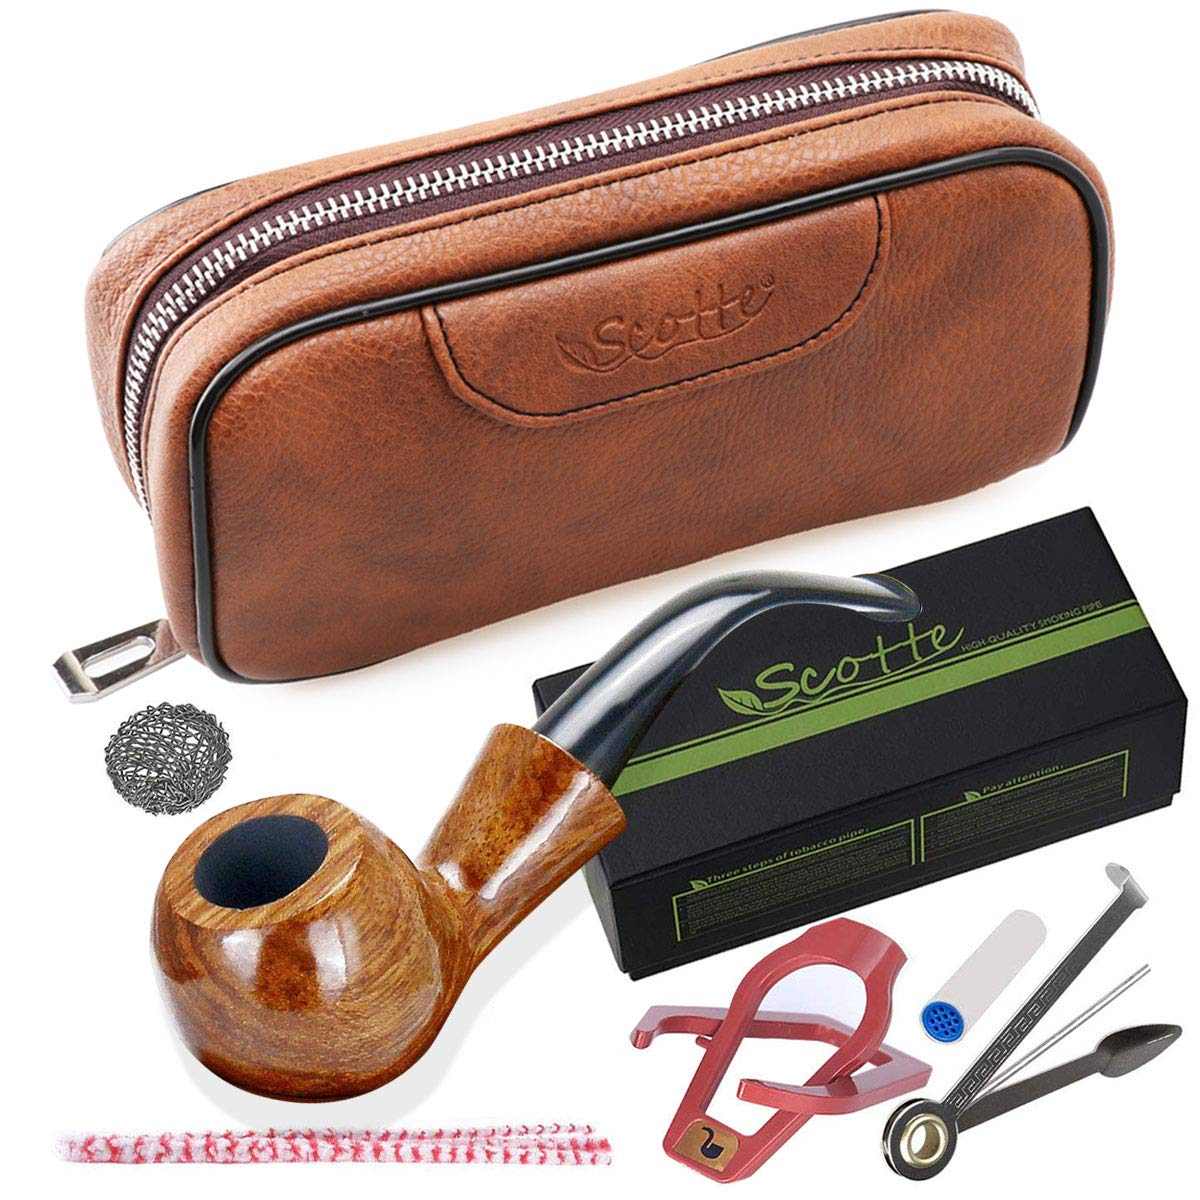 Scotte Tobacco Smoking Pipe, Leather Tobacco Pipe Pouch Pear Wood Pipe Accessories(Scraper/Stand/Filter Element/Filter Ball/Small Bag/Box) Scotte-08